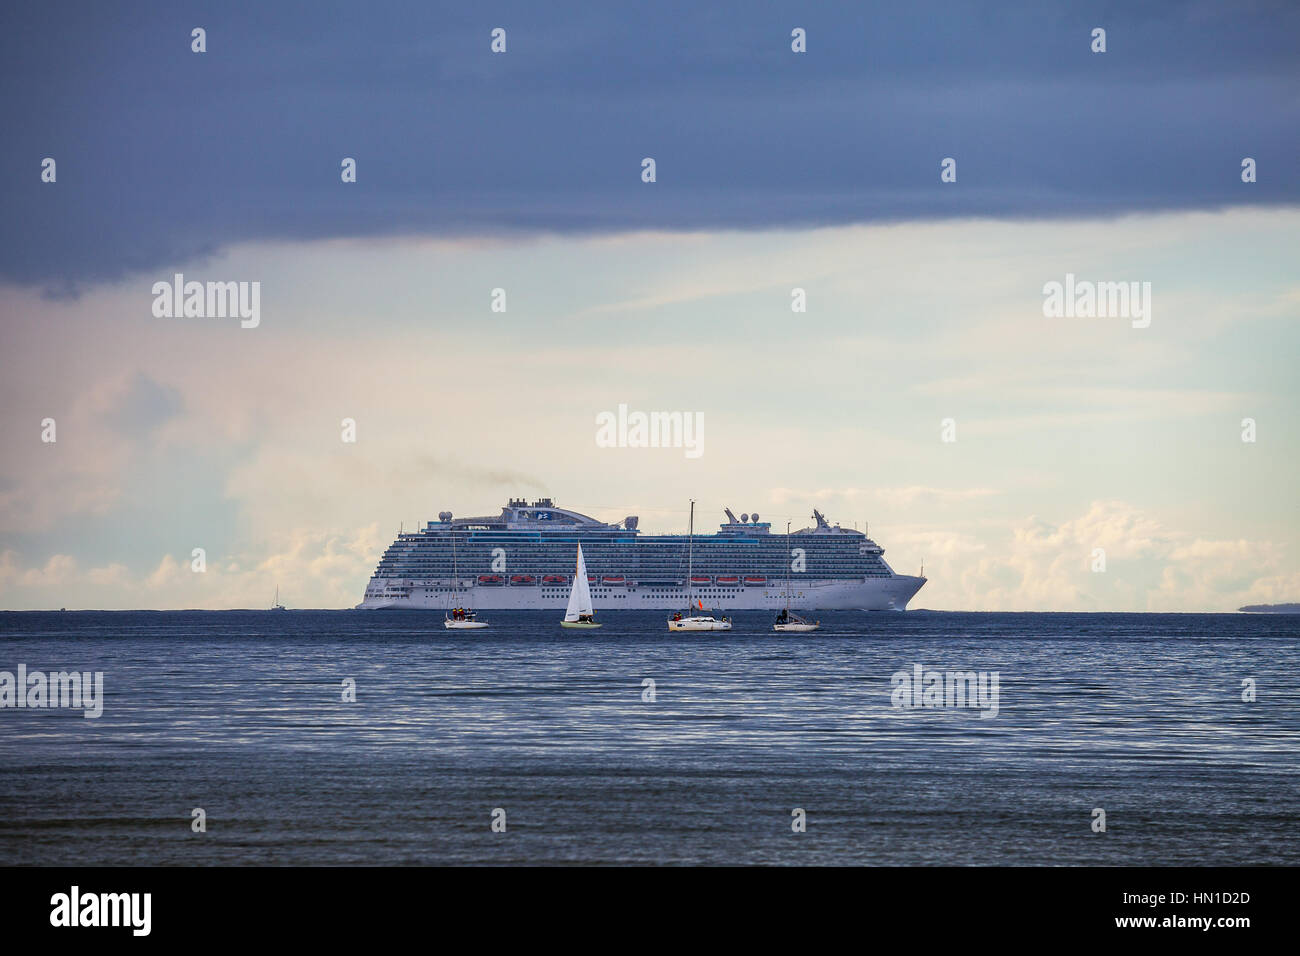 TALLINN, ESTONIA - 05 SEP 2015. Cruise liner and four boats in Baltic sea at cloudy day - Stock Image